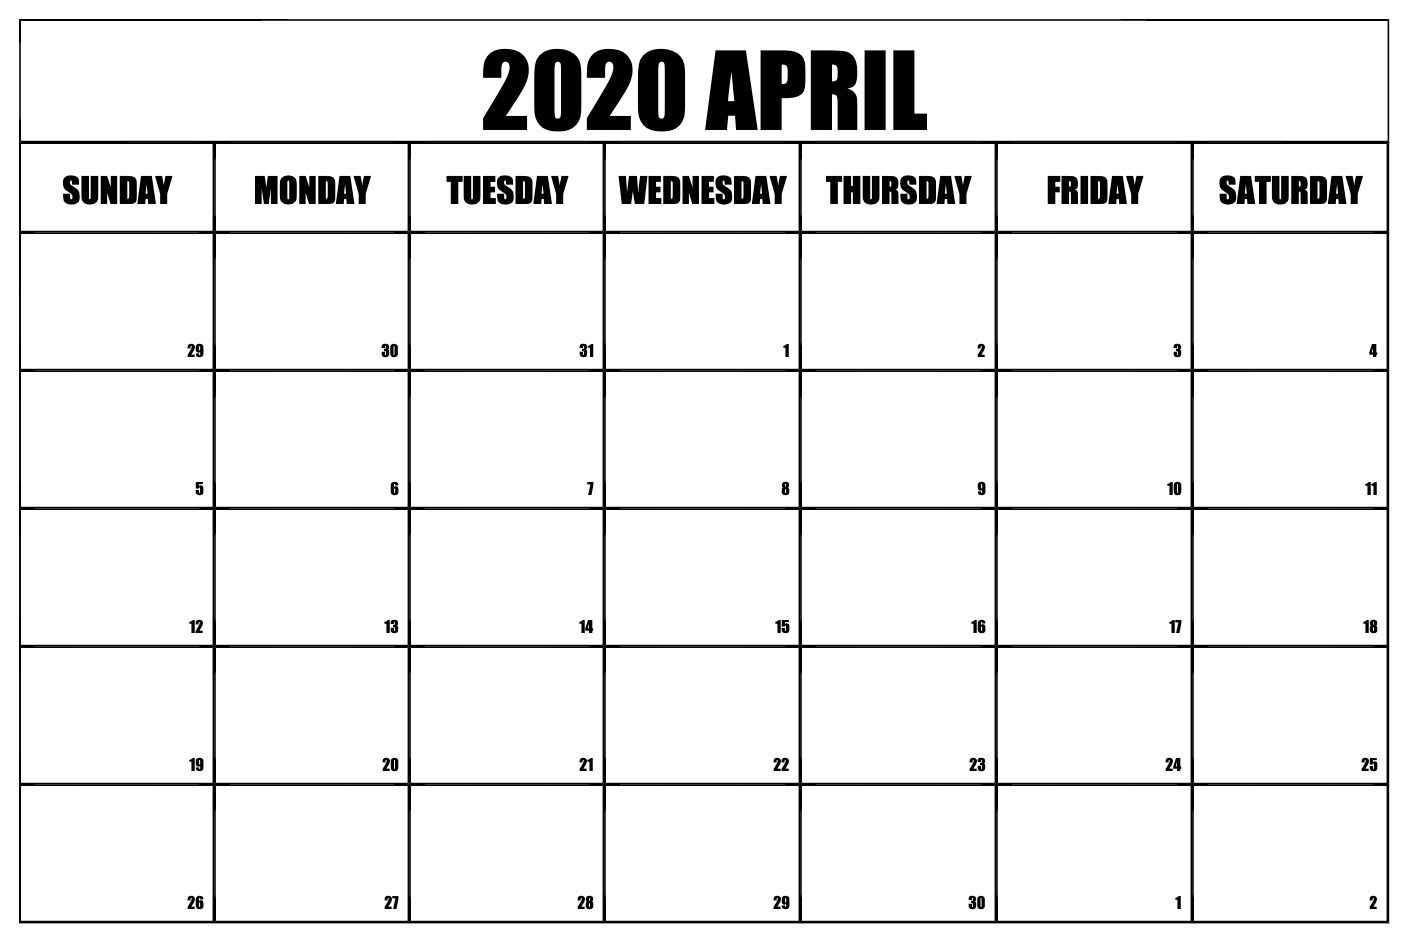 April 2020 Calendar Printable Template With Holidays July